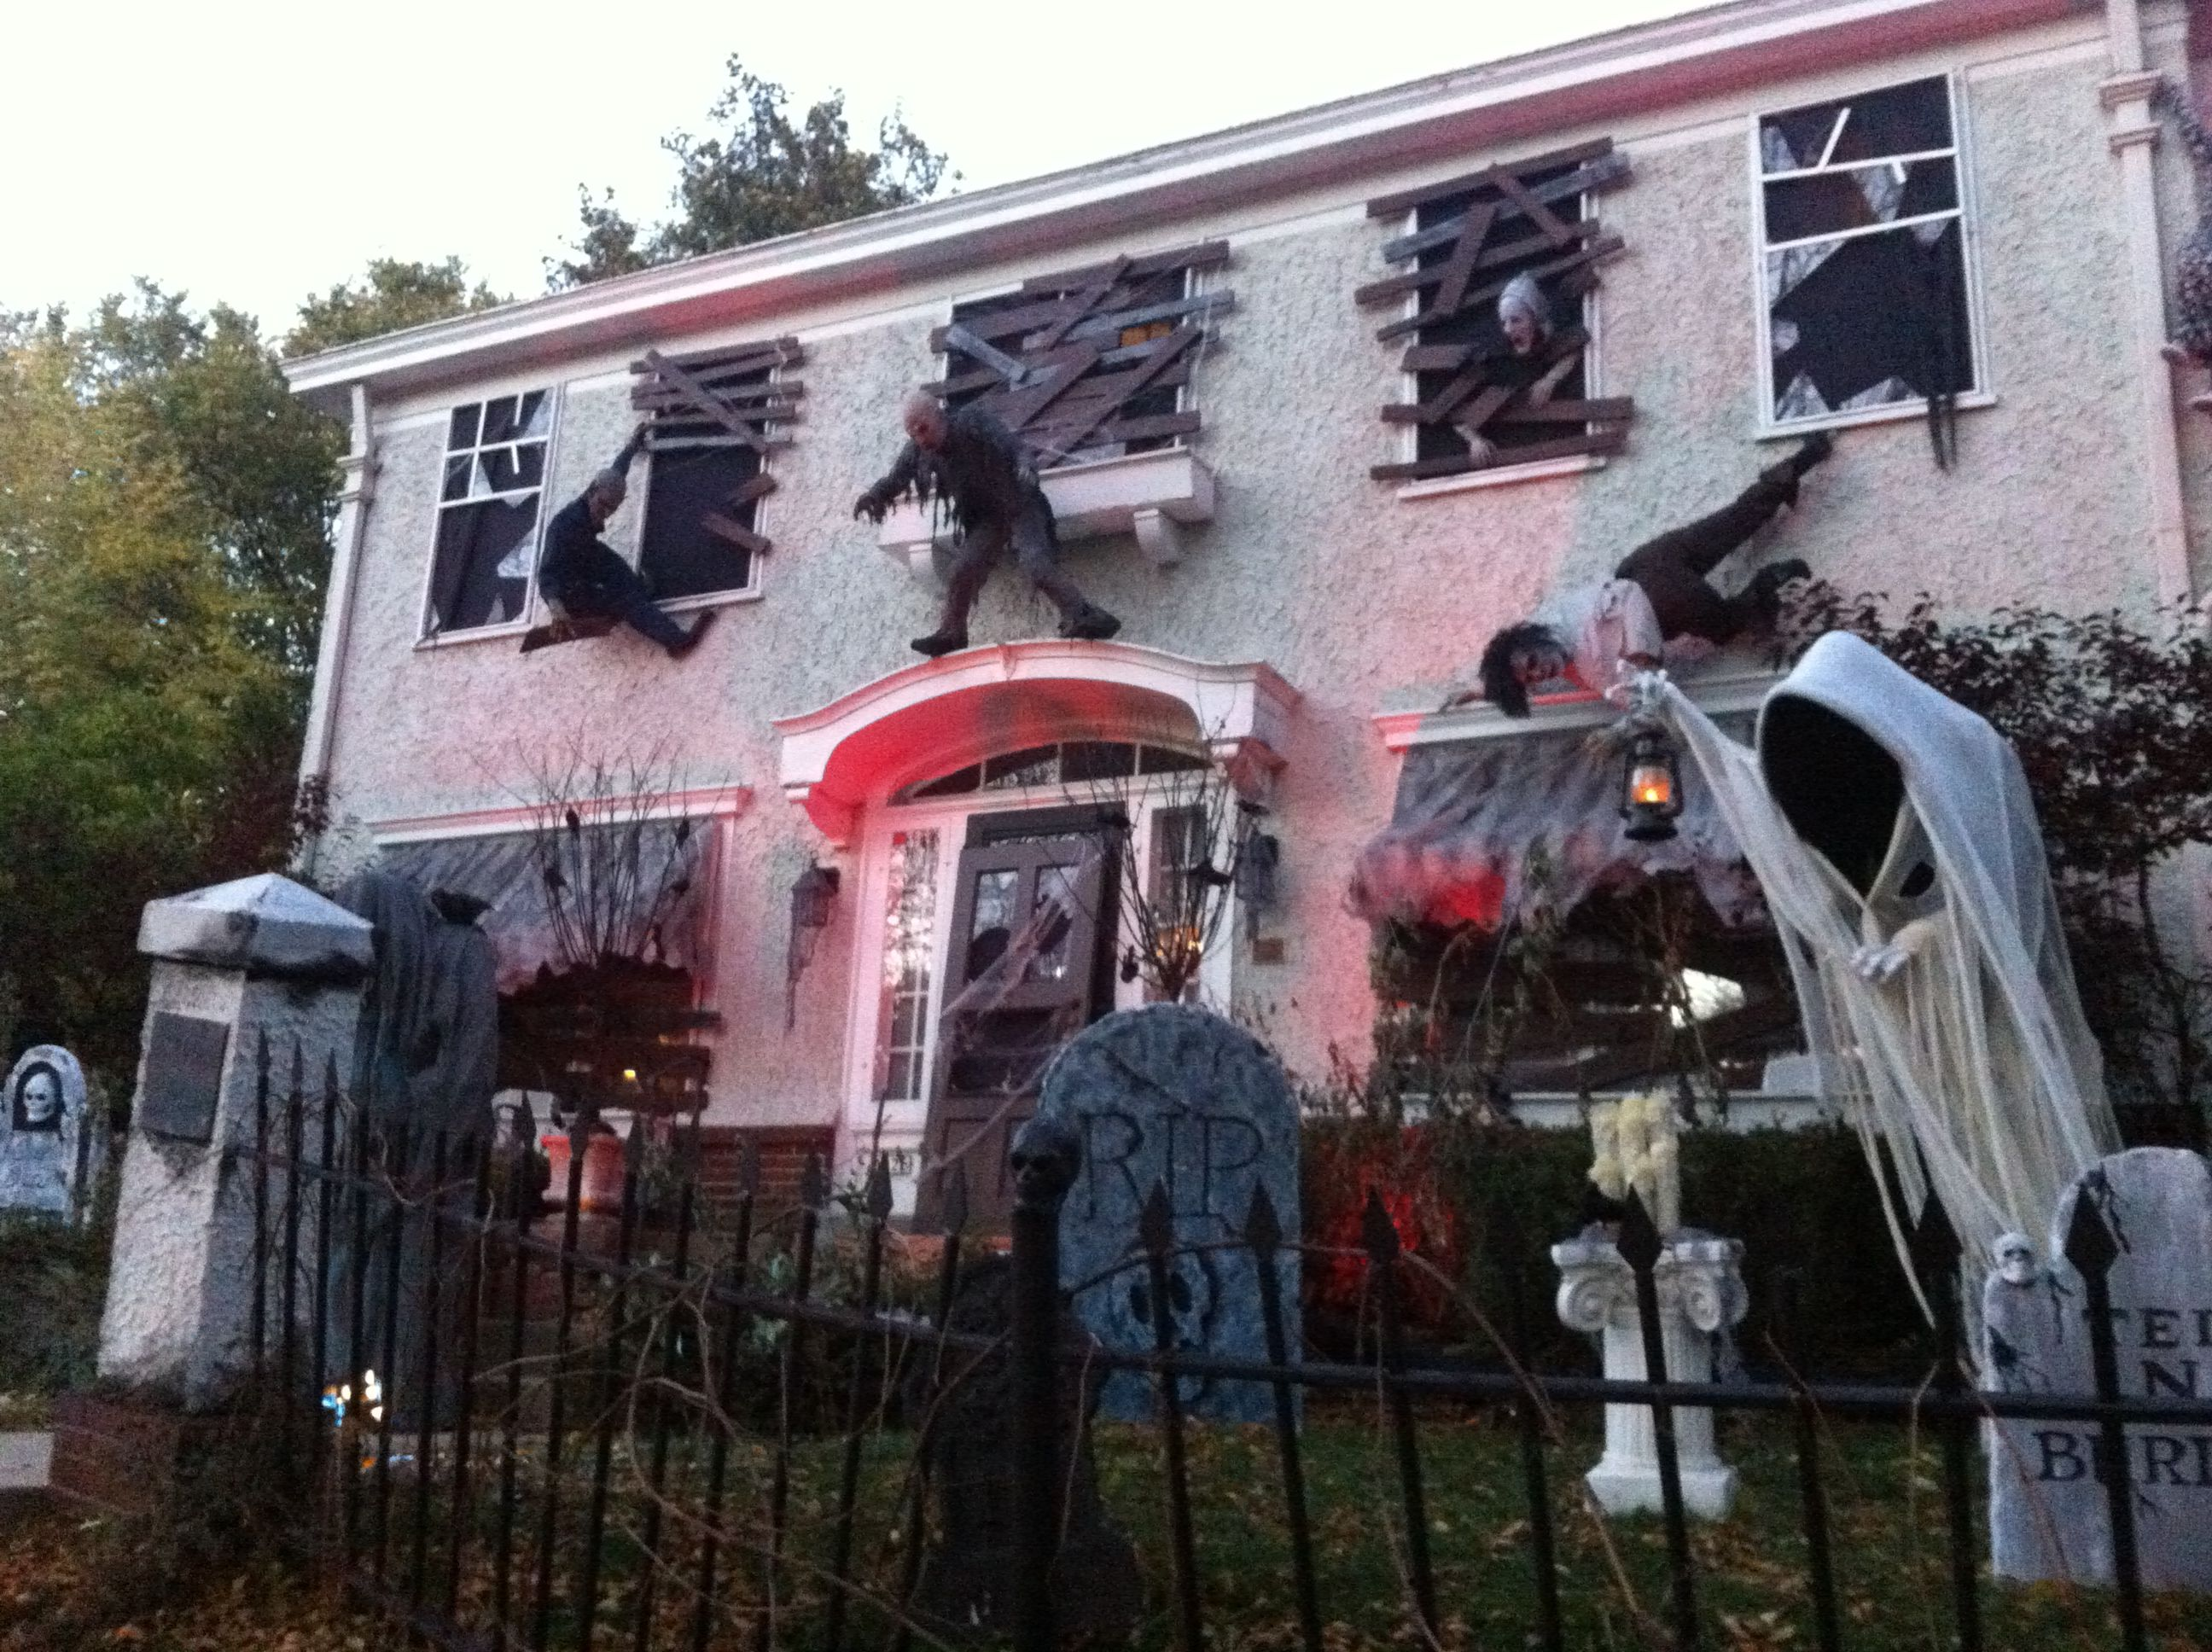 Uncategorized Decorate House For Halloween every halloween one home in the washington highlands neighborhood 2014 update this wauwatosa is up for sale and not decorated year original story from th